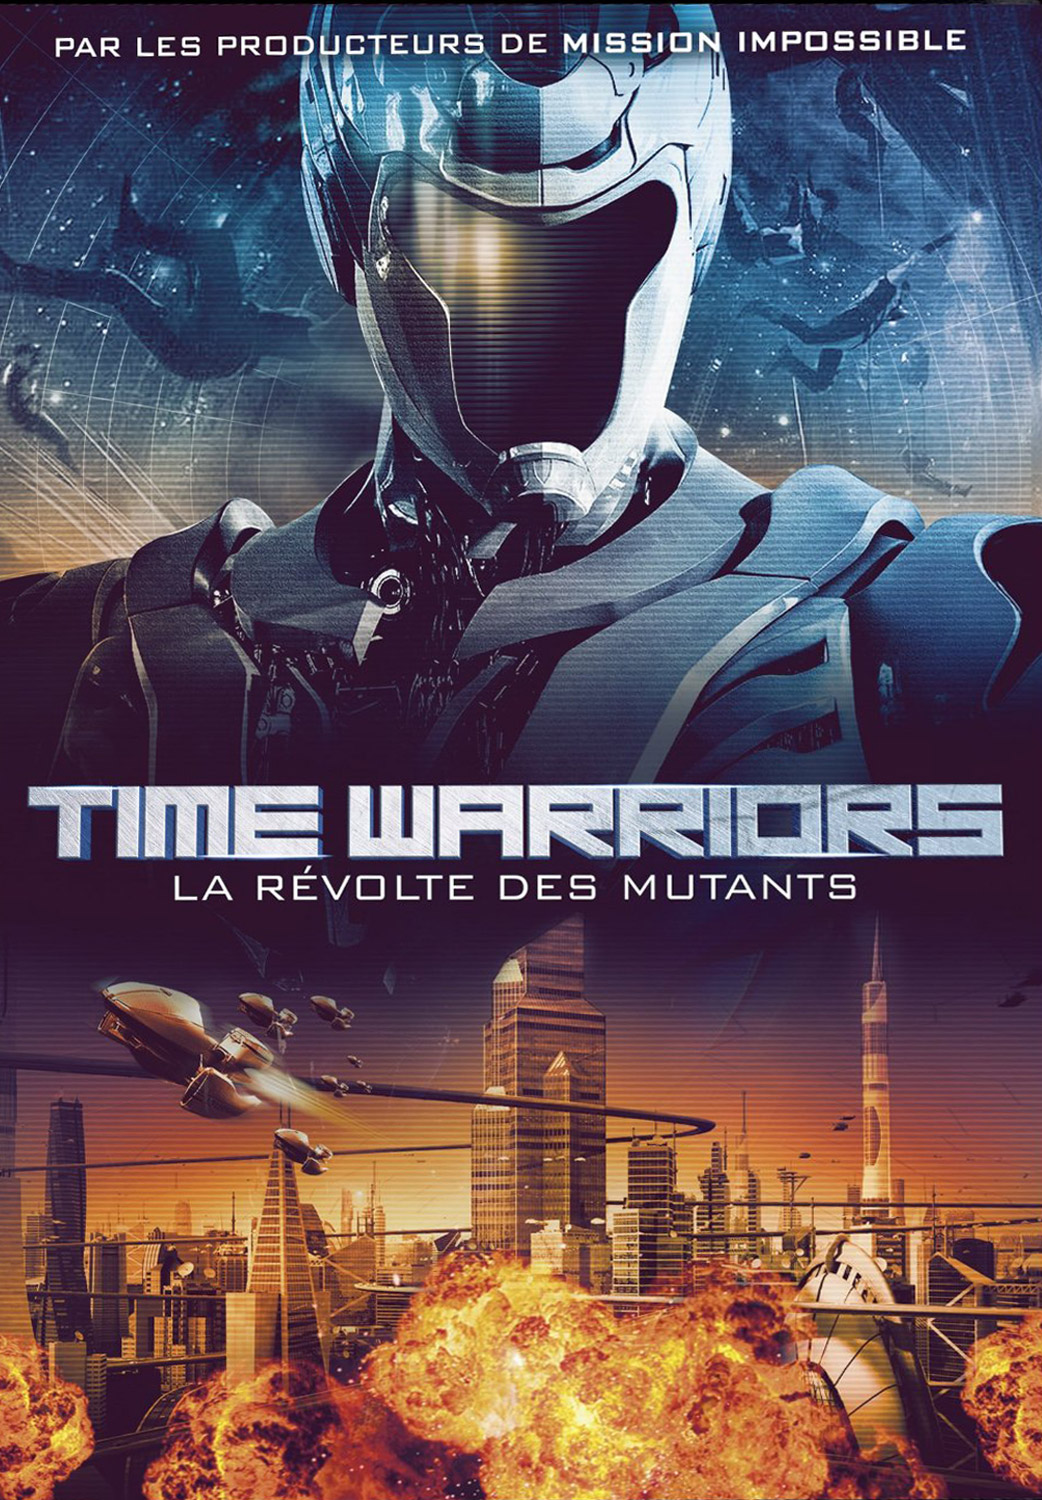 Time-Warriors